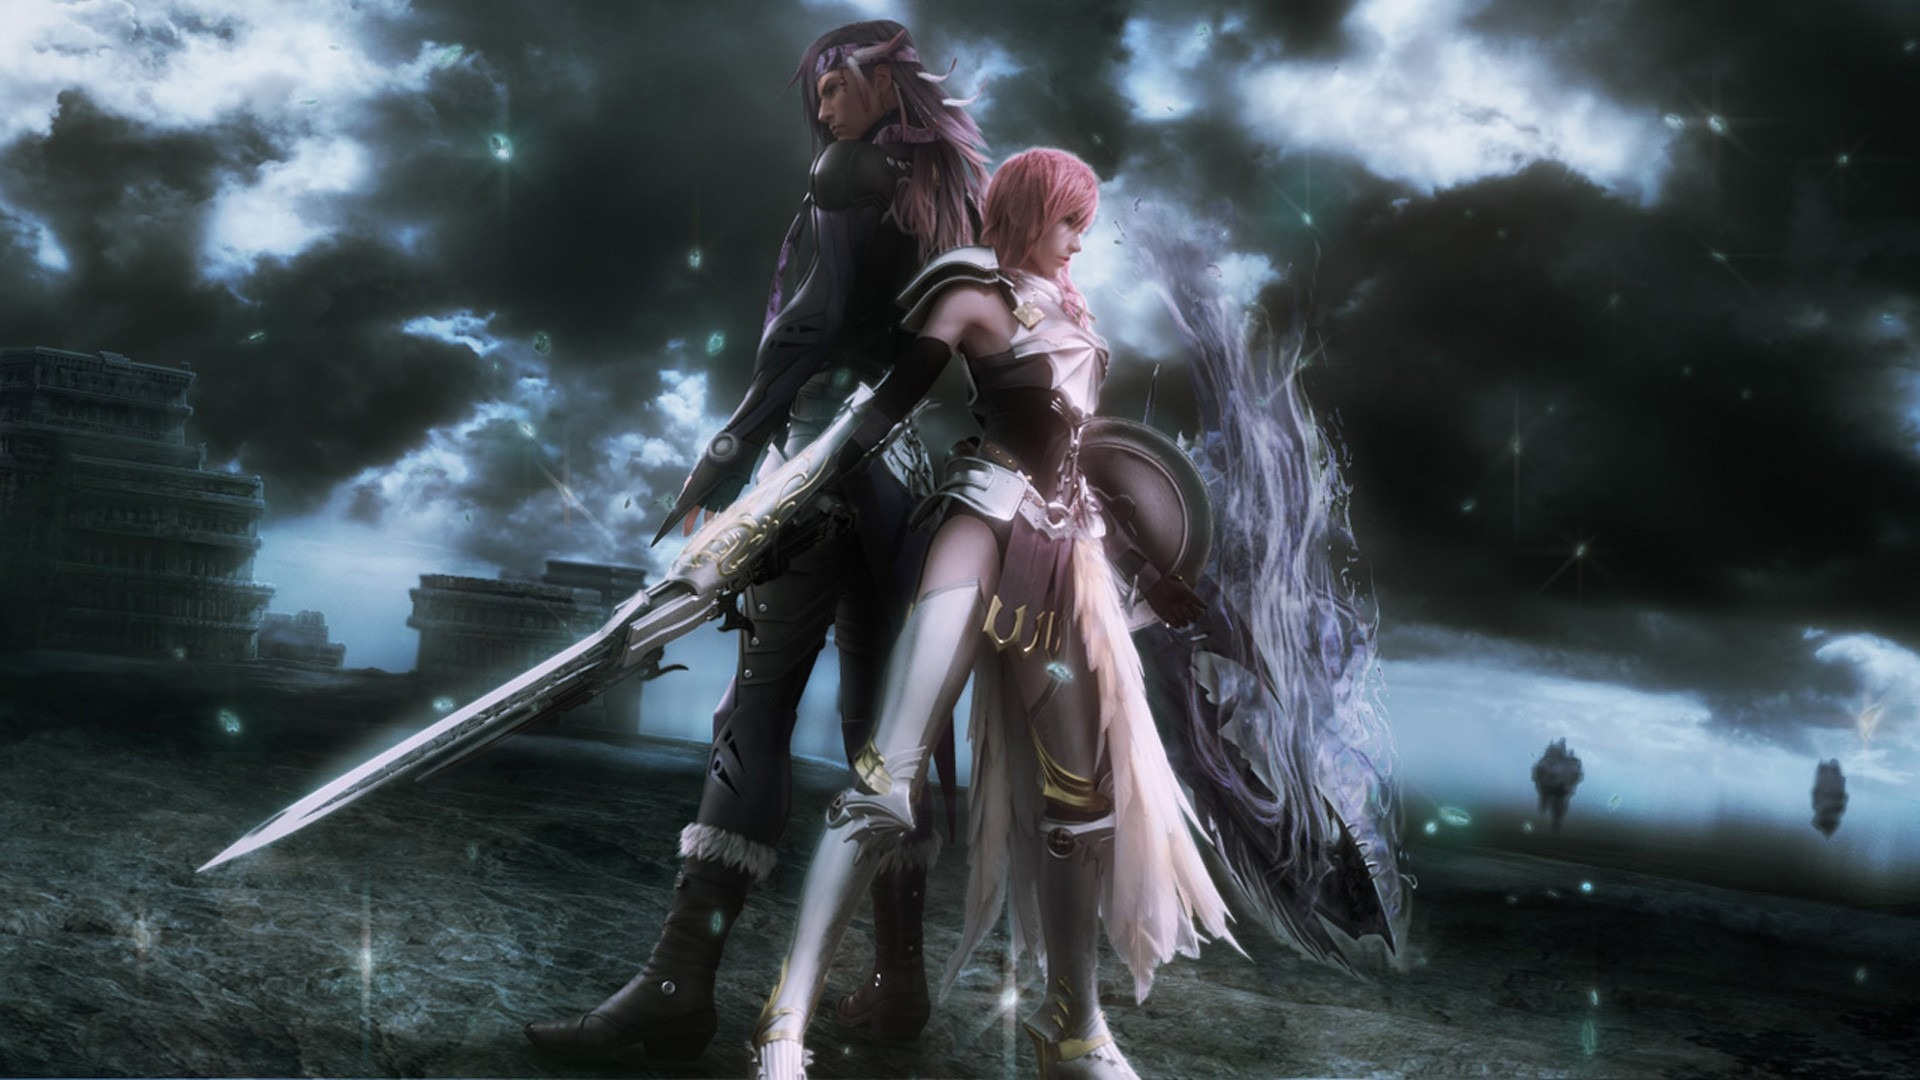 final fantasy xiii 2 wallpapers free downloads